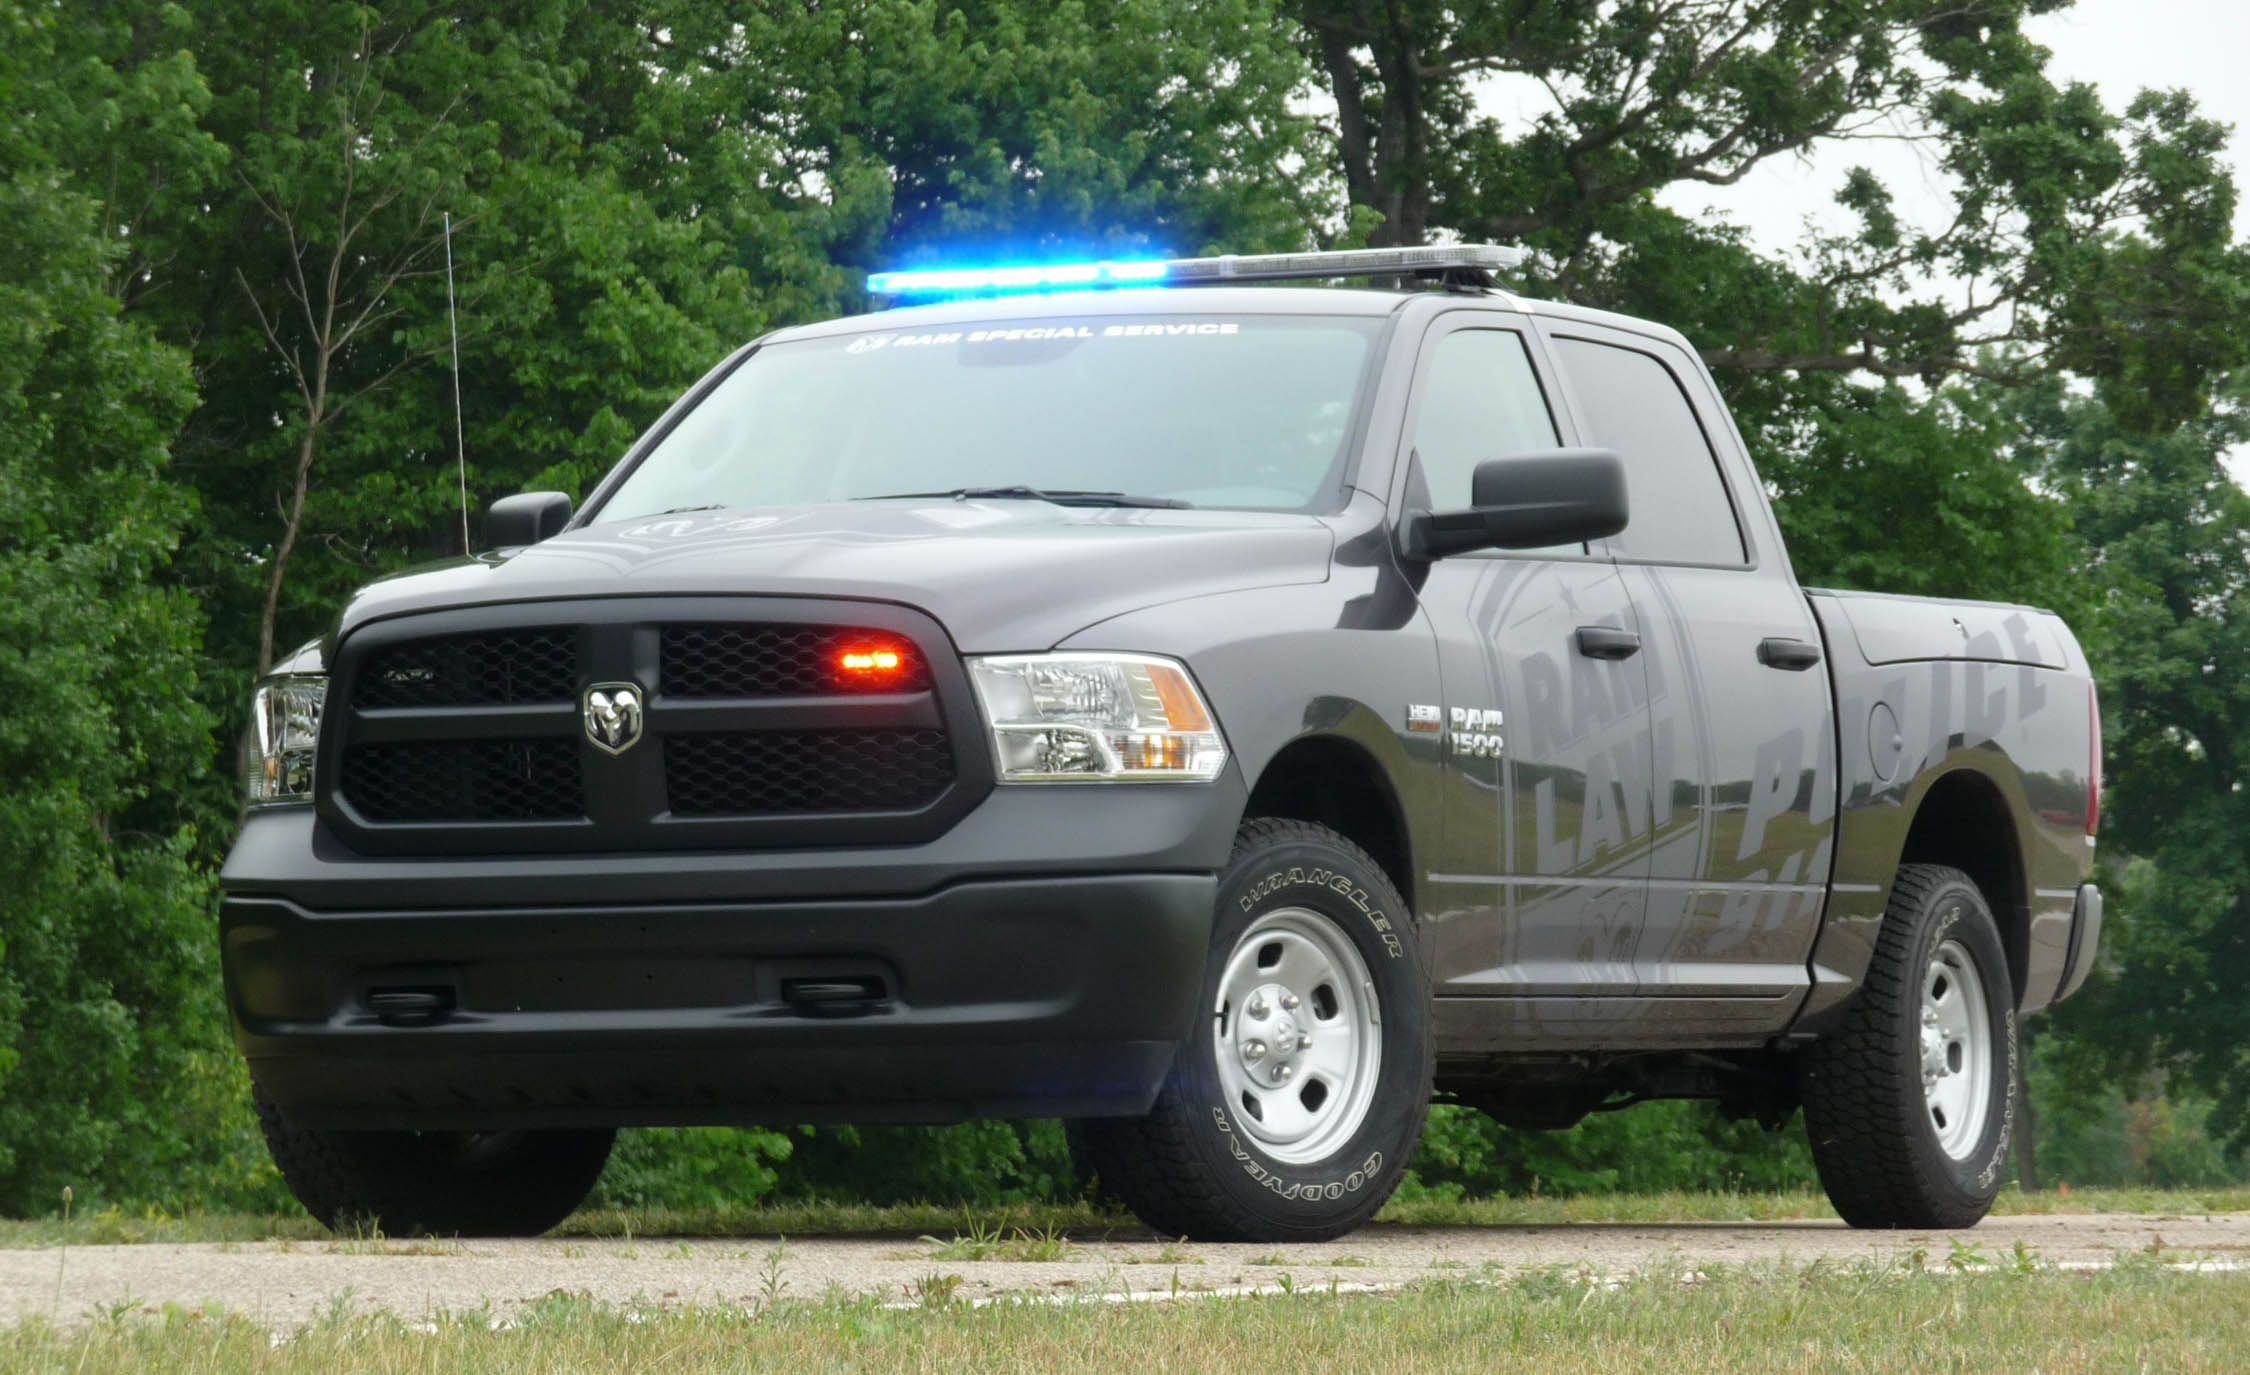 Ram 1500 SSV (Yes, the Cop Version)